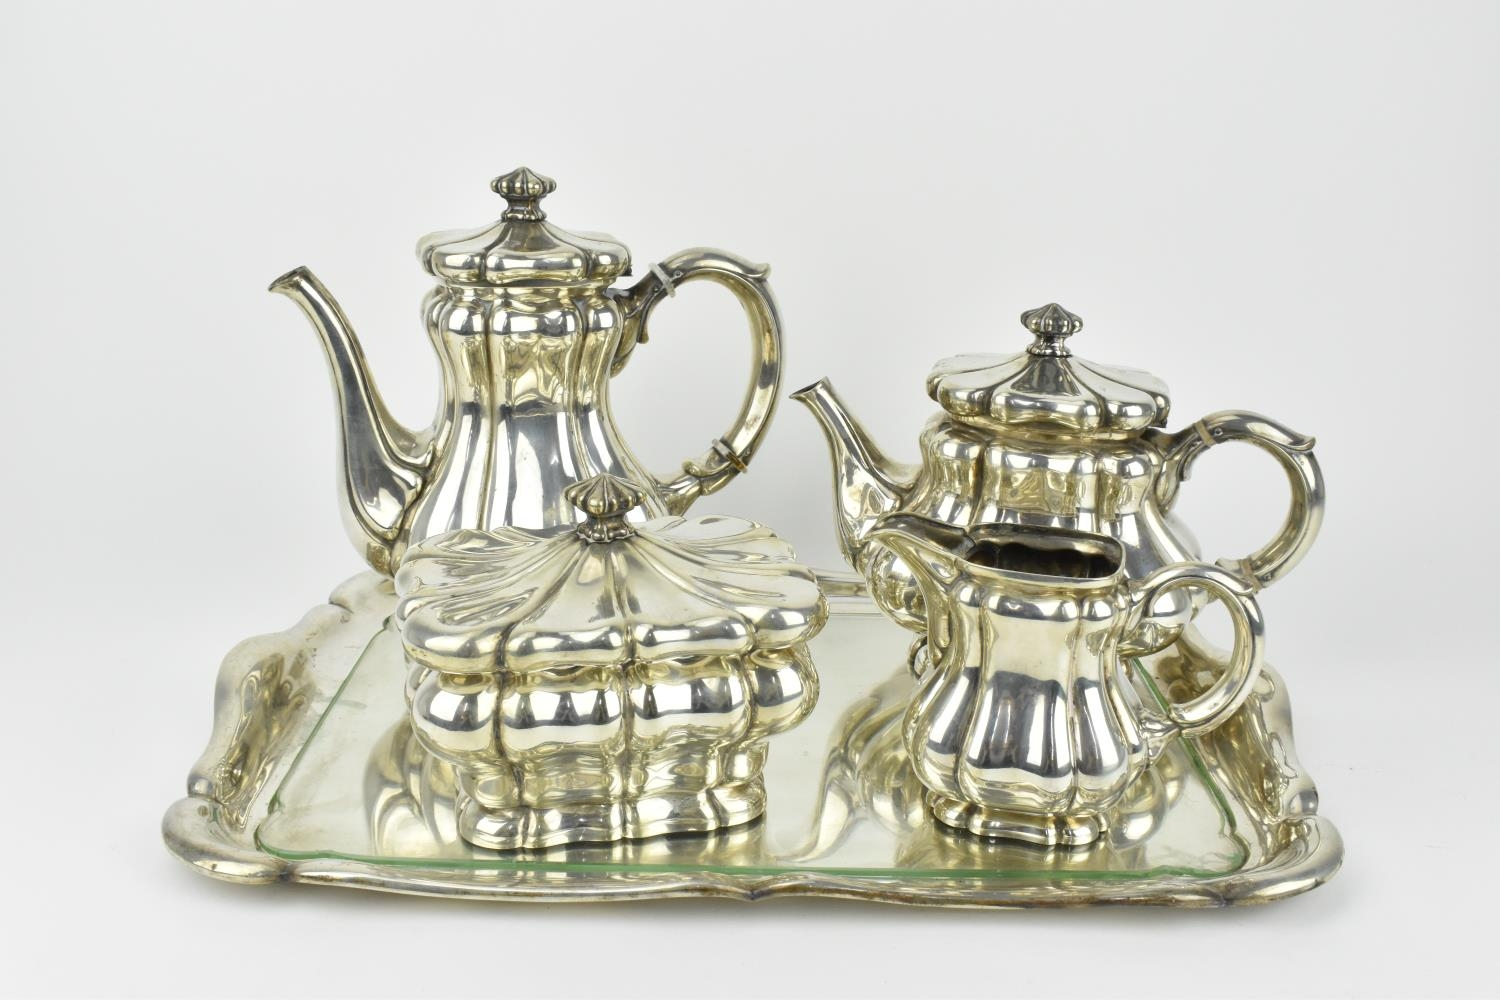 Silver & Jewellery Followed By Antiques, Fine Art & Collectables.